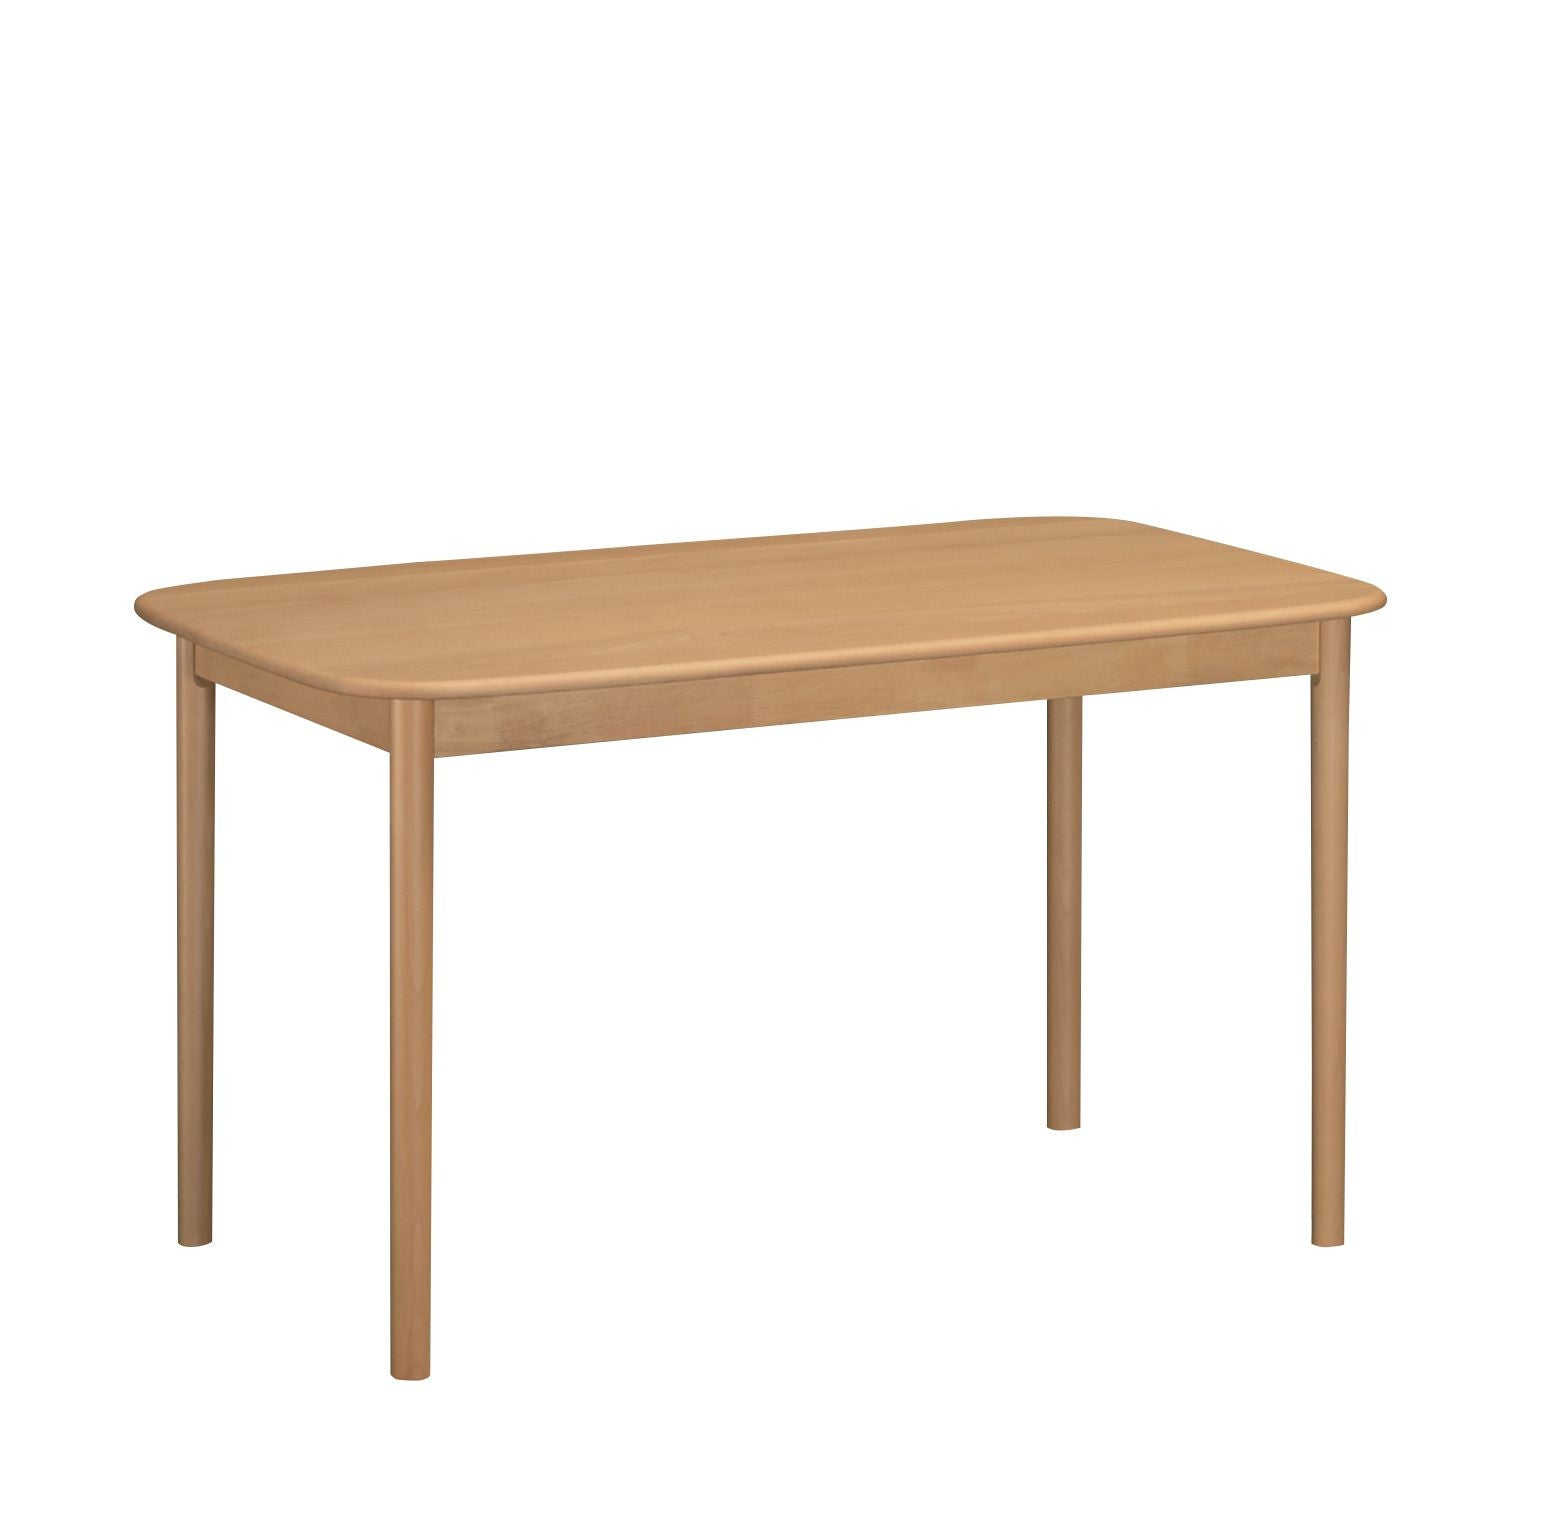 Kitono Dining Table S - Dining Table - Kitono by Karimoku